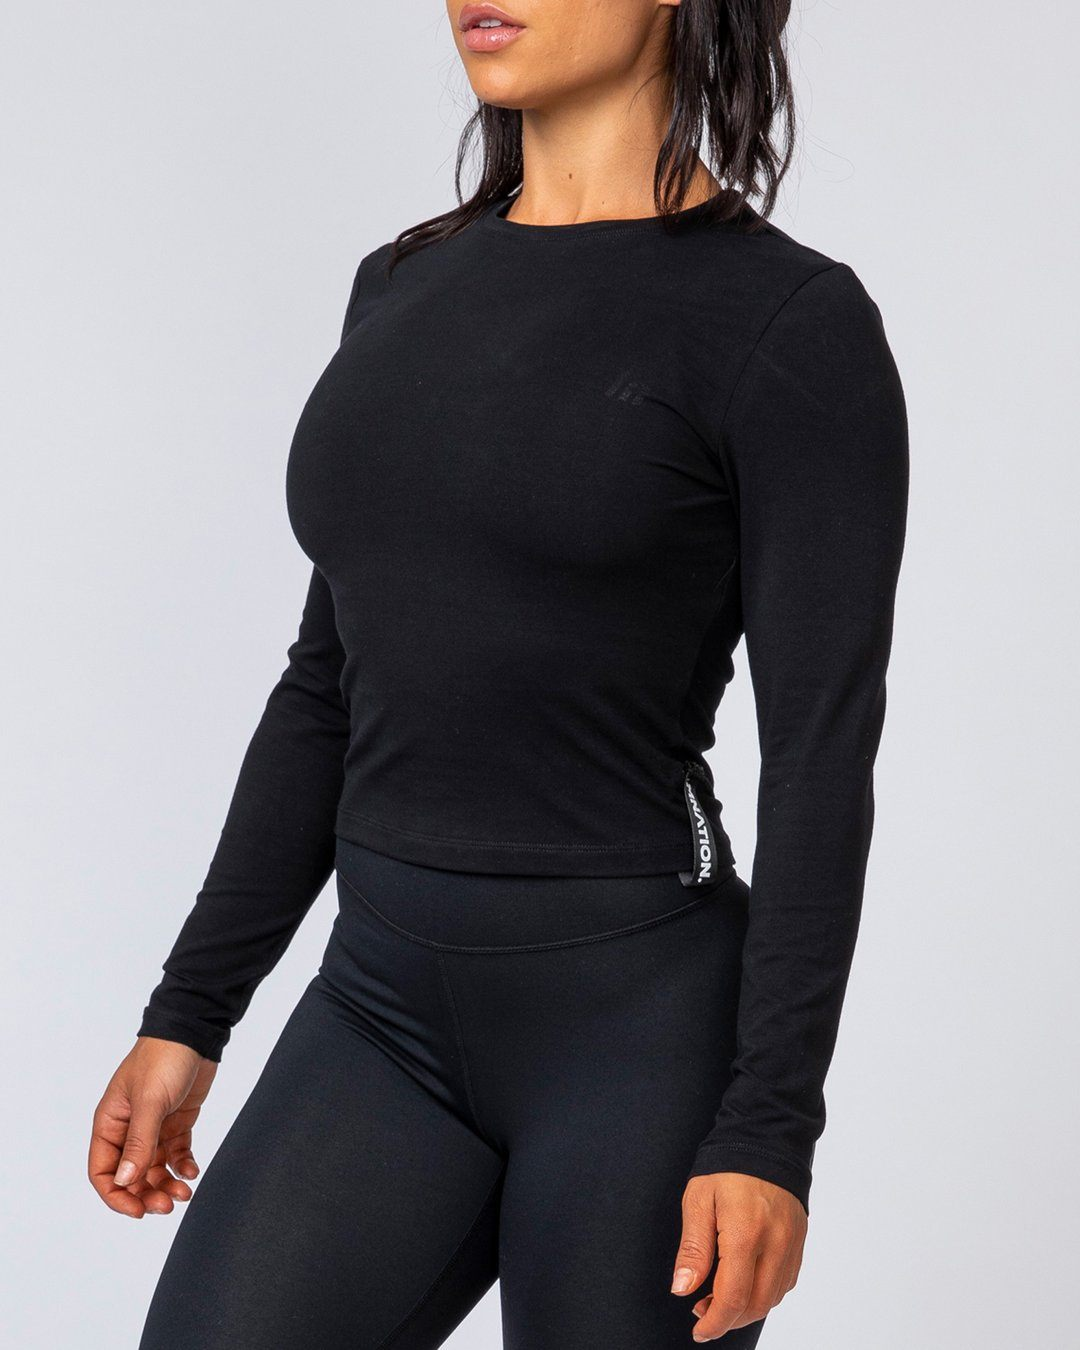 Muscle Nation Women's Long Sleeve - Black